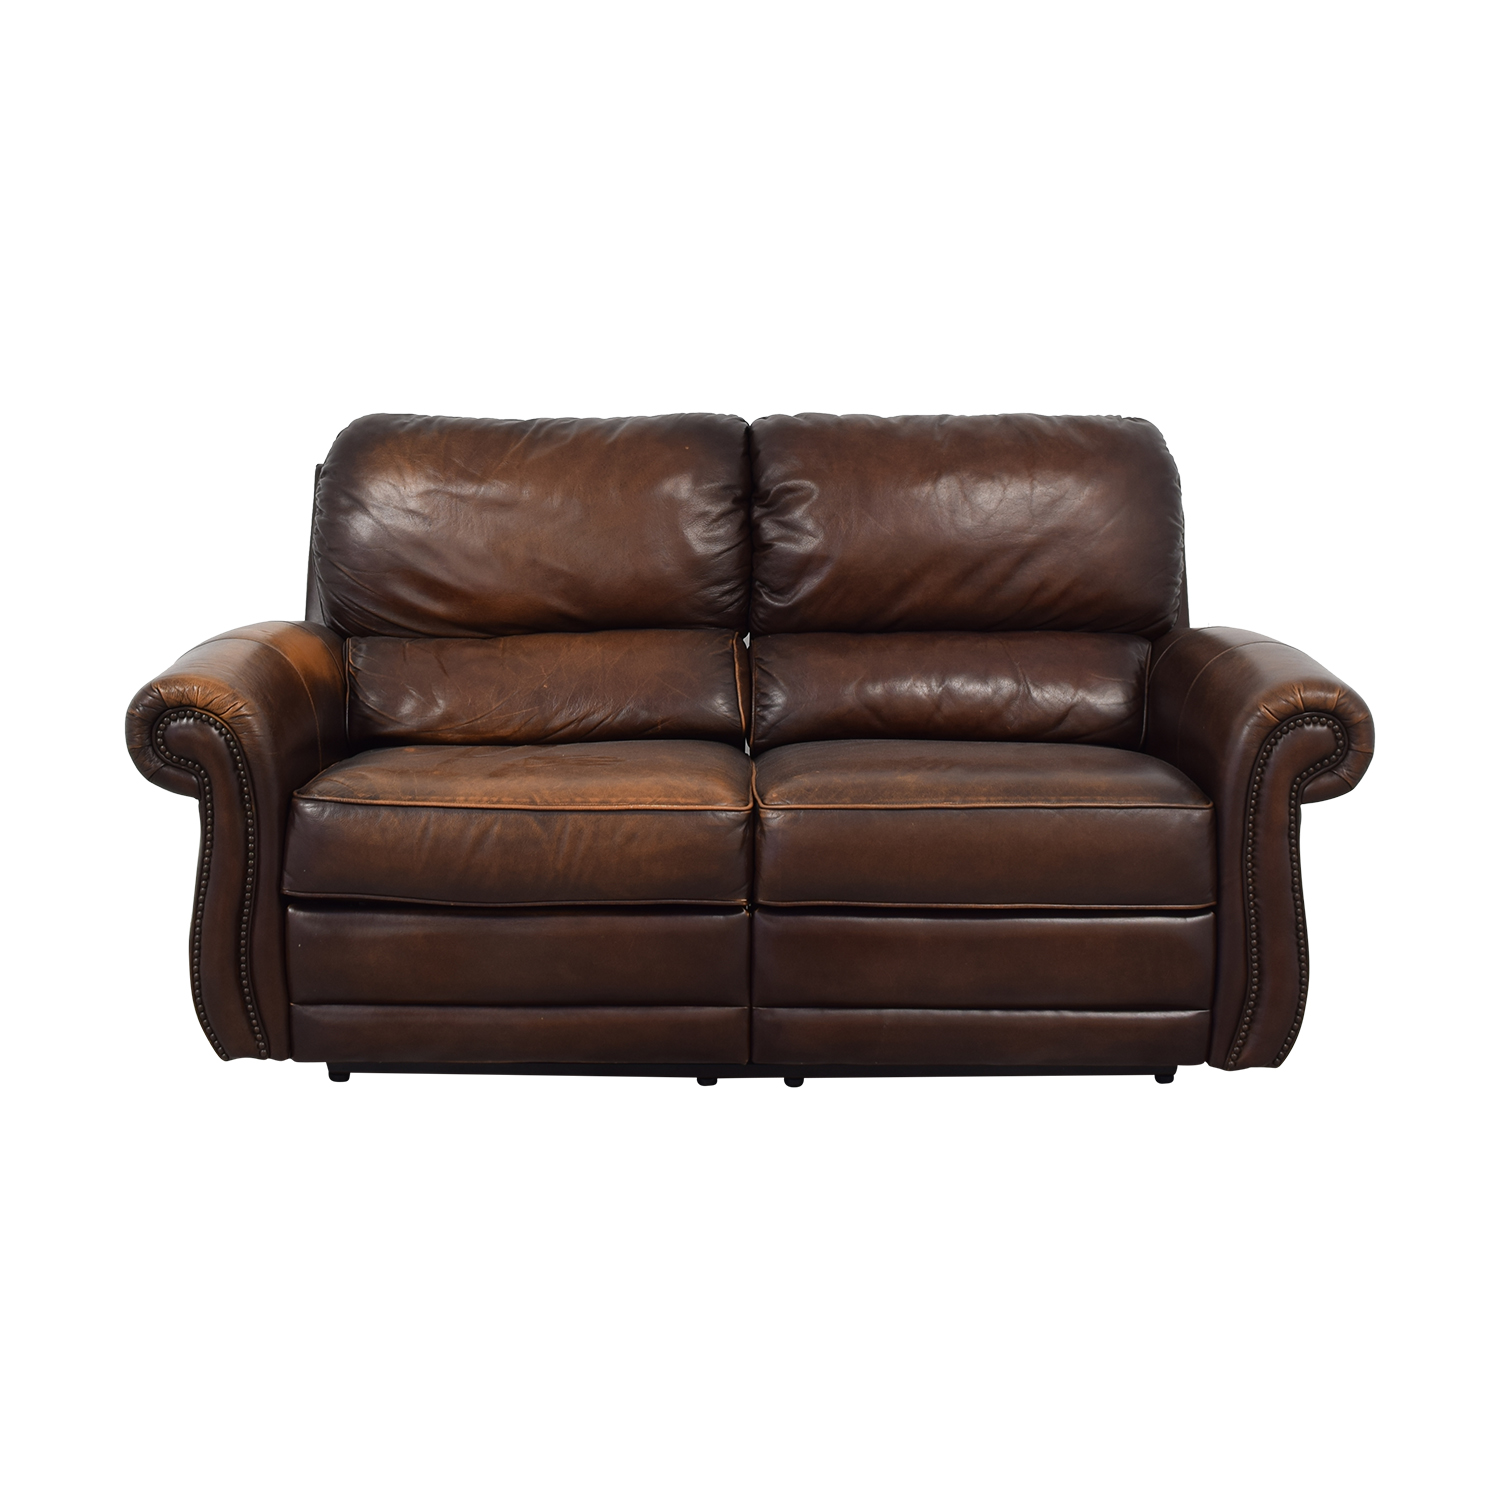 Raymour & Flanigan Raymour & Flanigan Leather Loveseat Recliner price